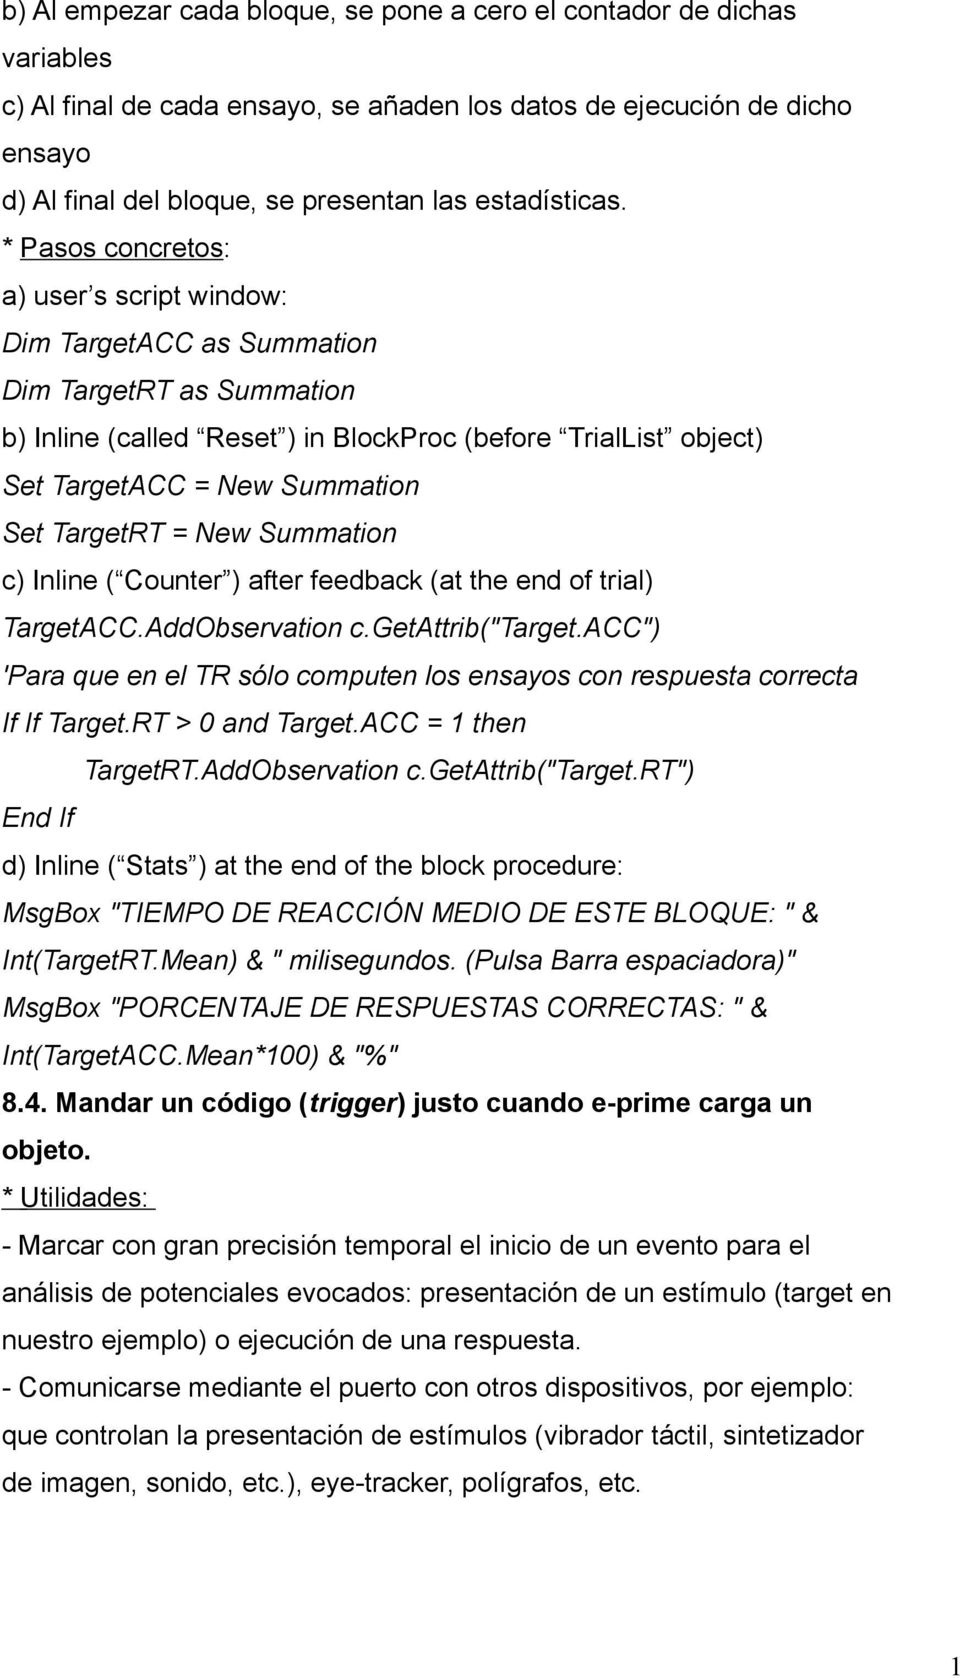 * Pasos concretos: a) user s script window: Dim TargetACC as Summation Dim TargetRT as Summation b) Inline (called Reset ) in BlockProc (before TrialList object) Set TargetACC = New Summation Set